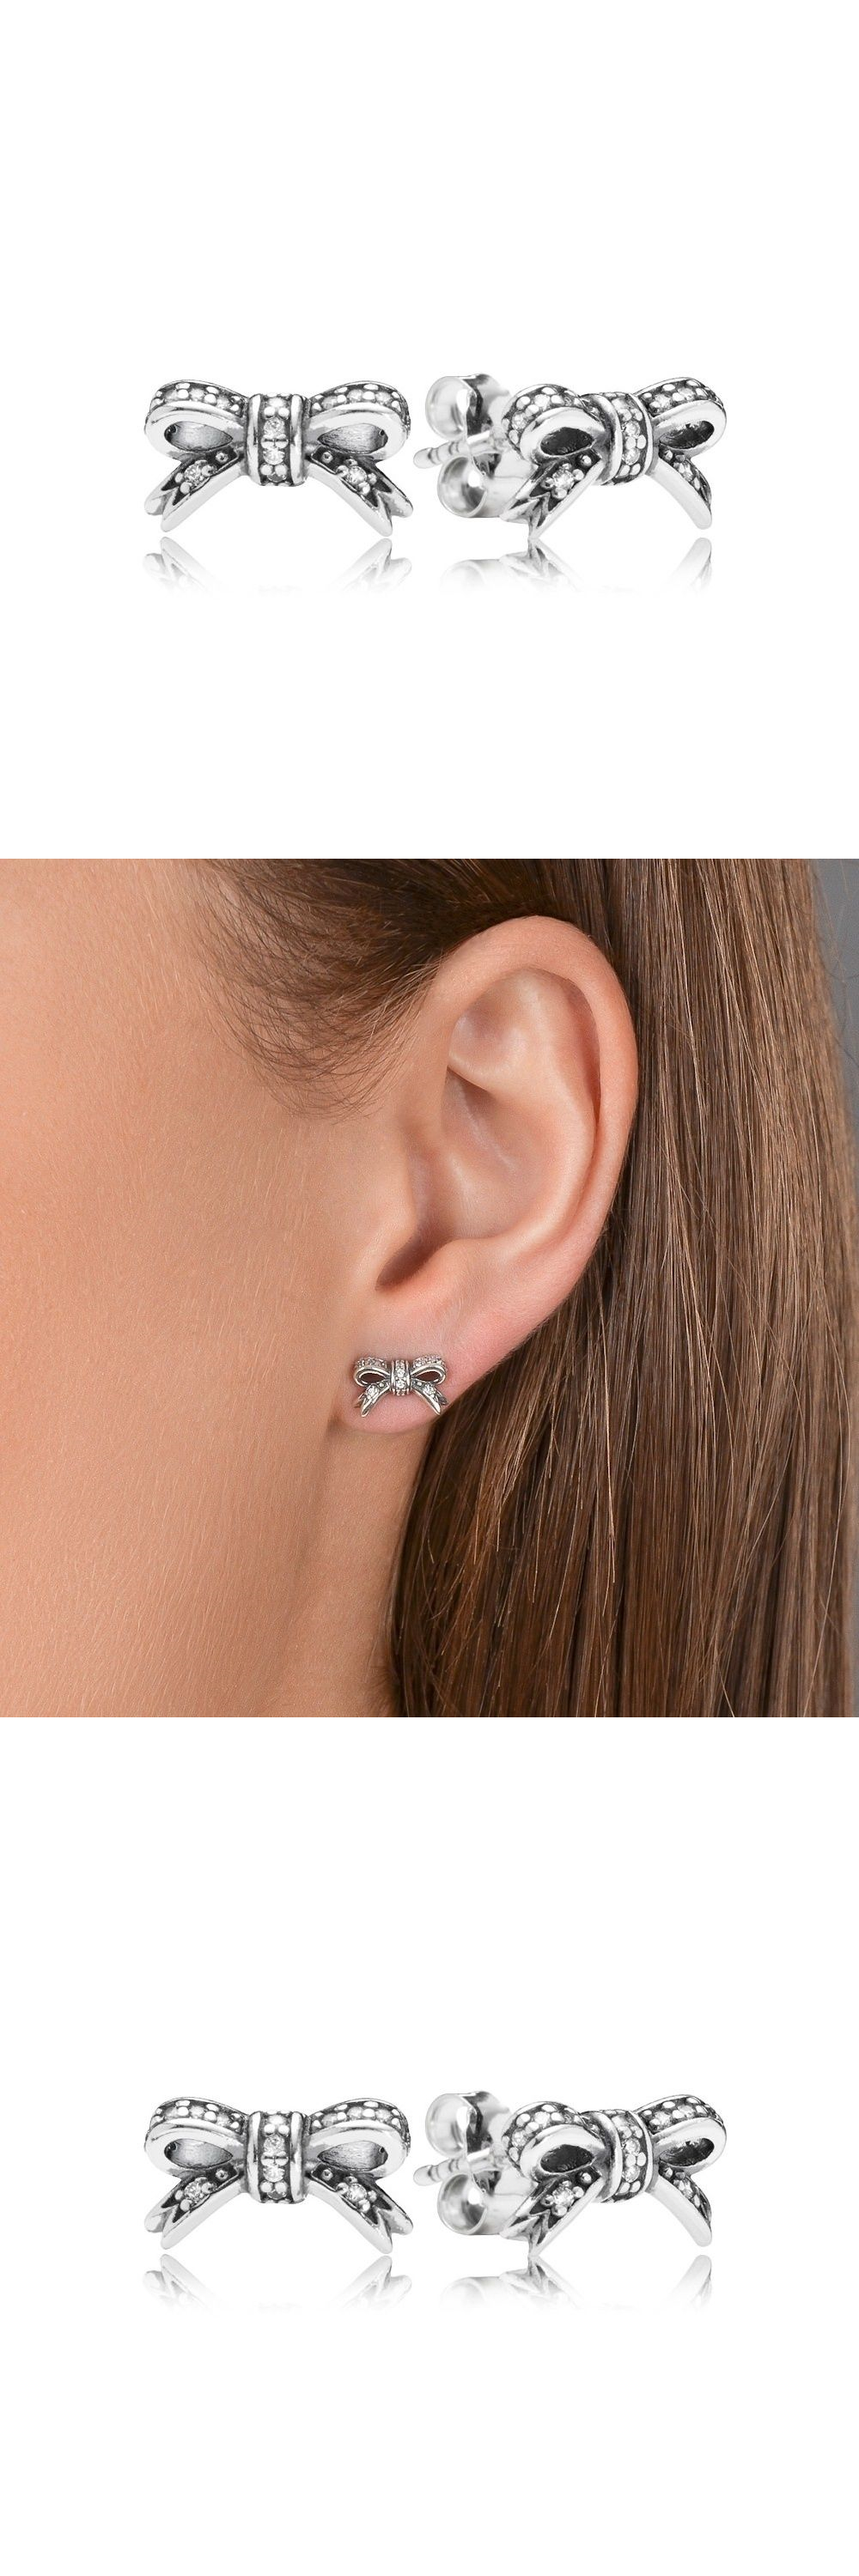 e93c0b1fb Earrings 50647: New! Authentic Pandora 925 Silver Sparkling Bow Stud  Earrings Clear Cz #290555Cz -> BUY IT NOW ONLY: $42 on eBay!